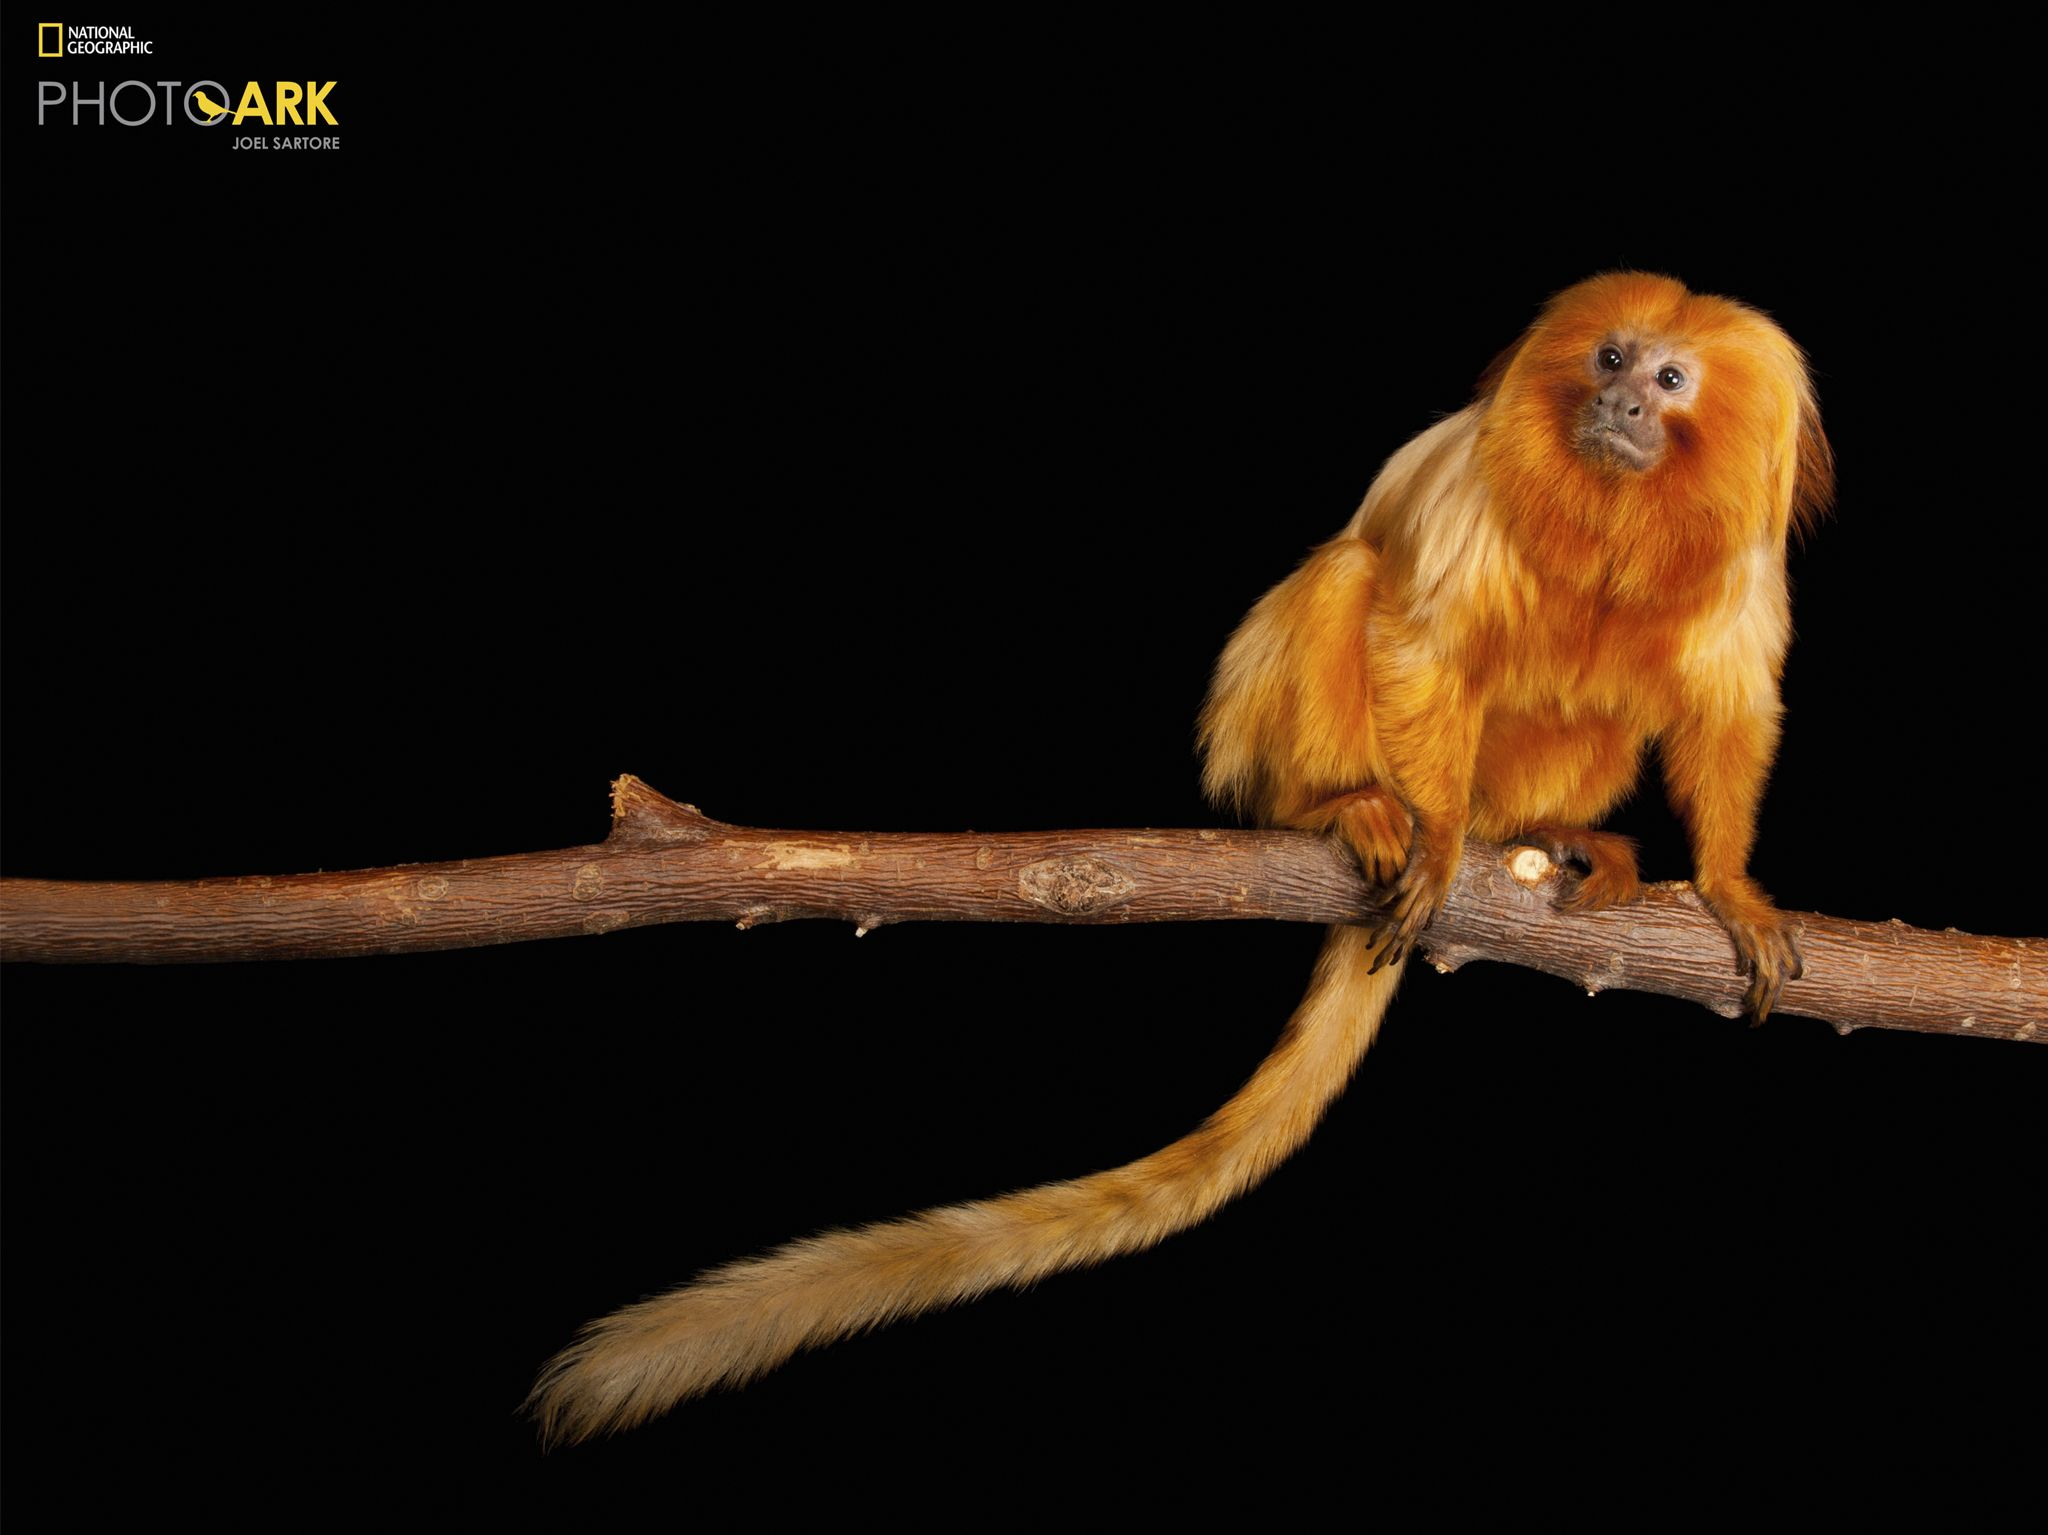 An endangered Golden lion tamarin, Leontopithecus rosalia, at the Lincoln Children's Zoo. This... [Photo of the day - November 2020]